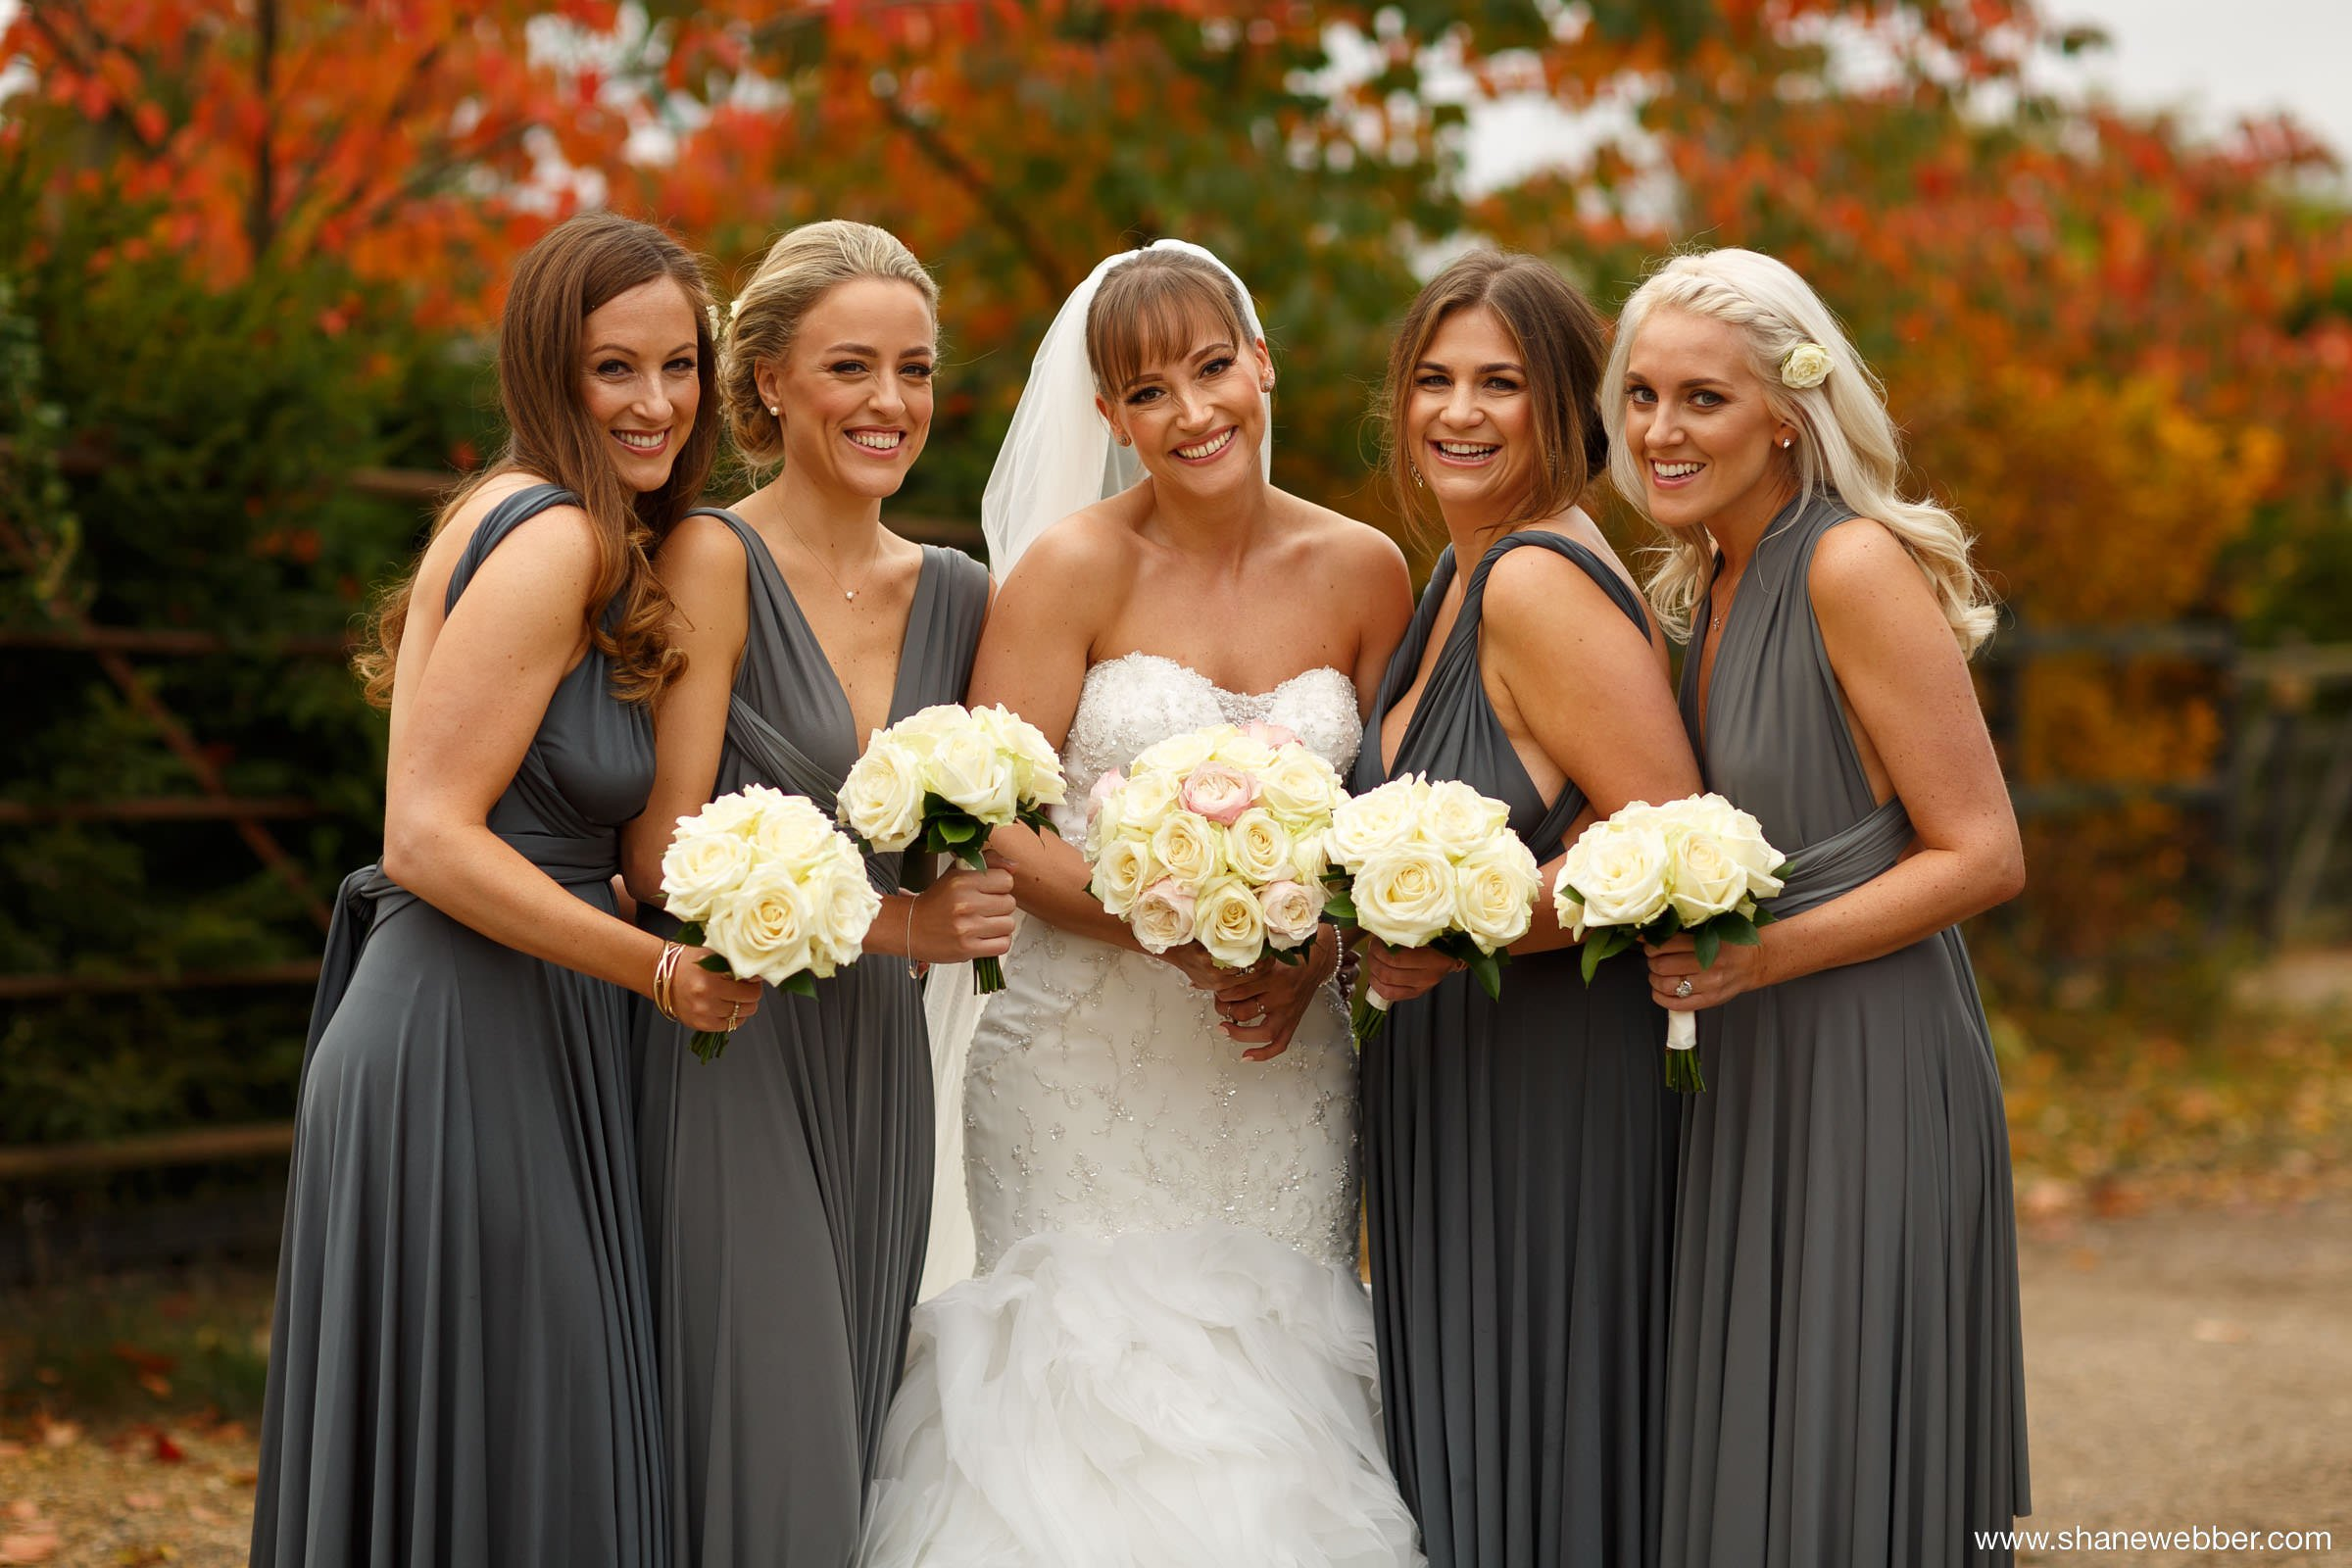 Photo of the bride and bridesmaids